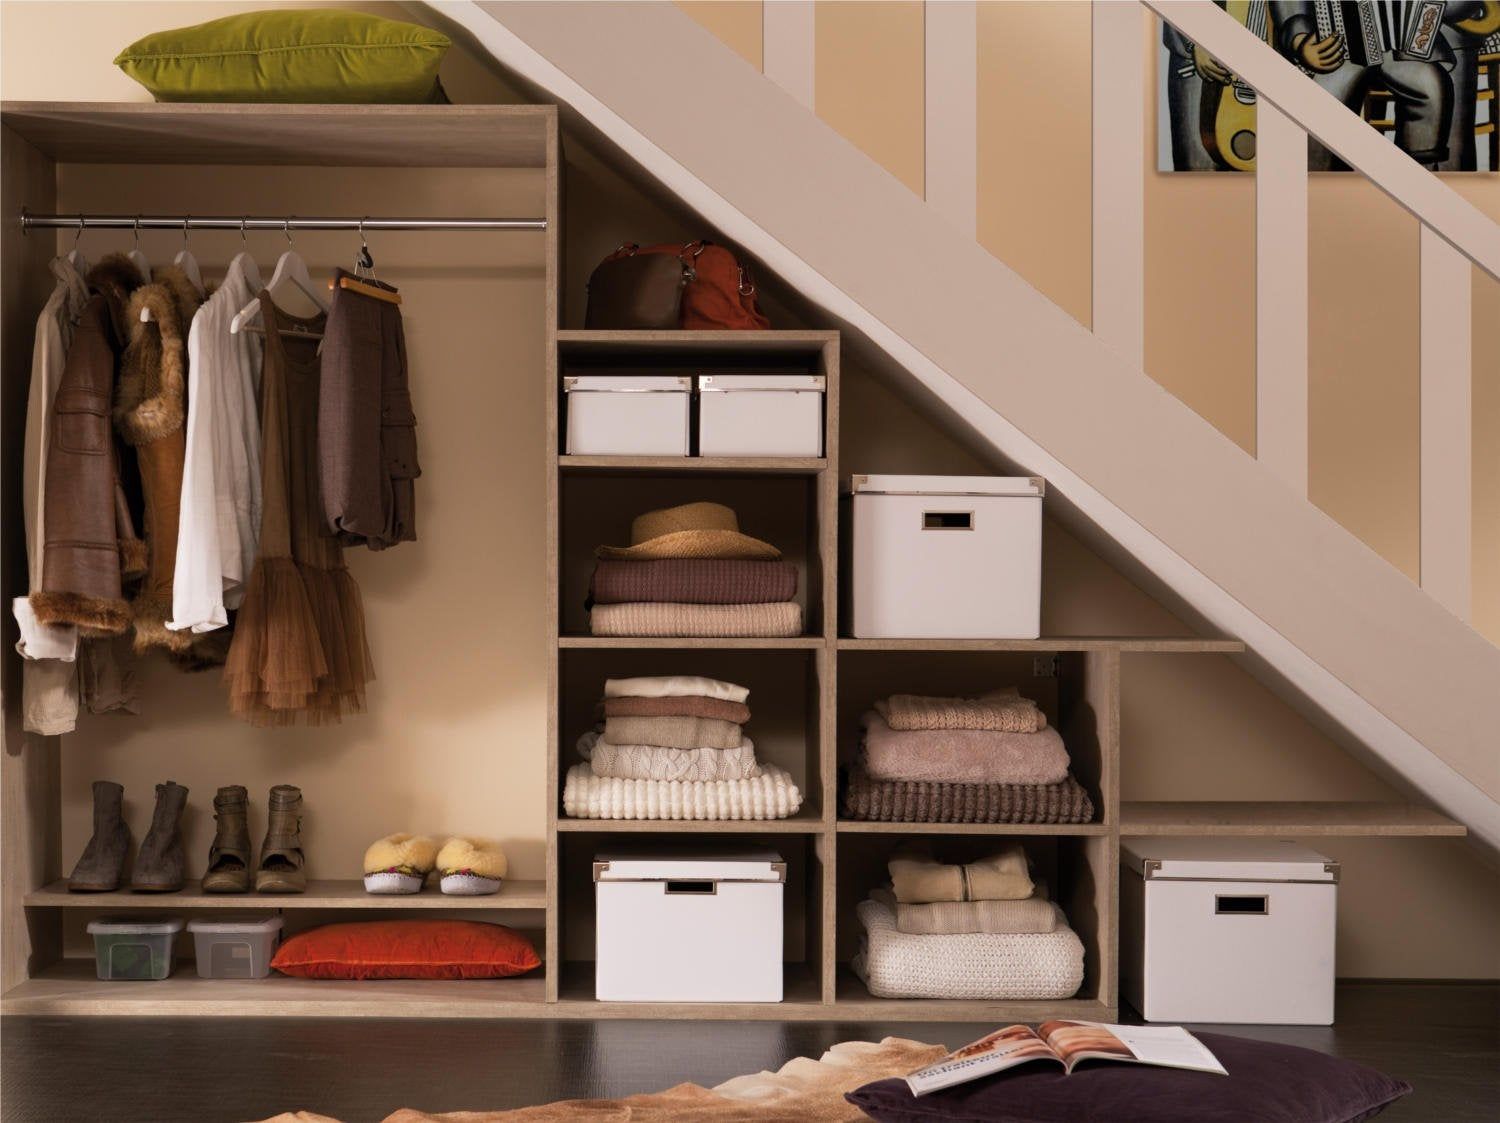 Comment cr er un dressing sous un escalier leroy merlin - Comment amenager un dressing ...